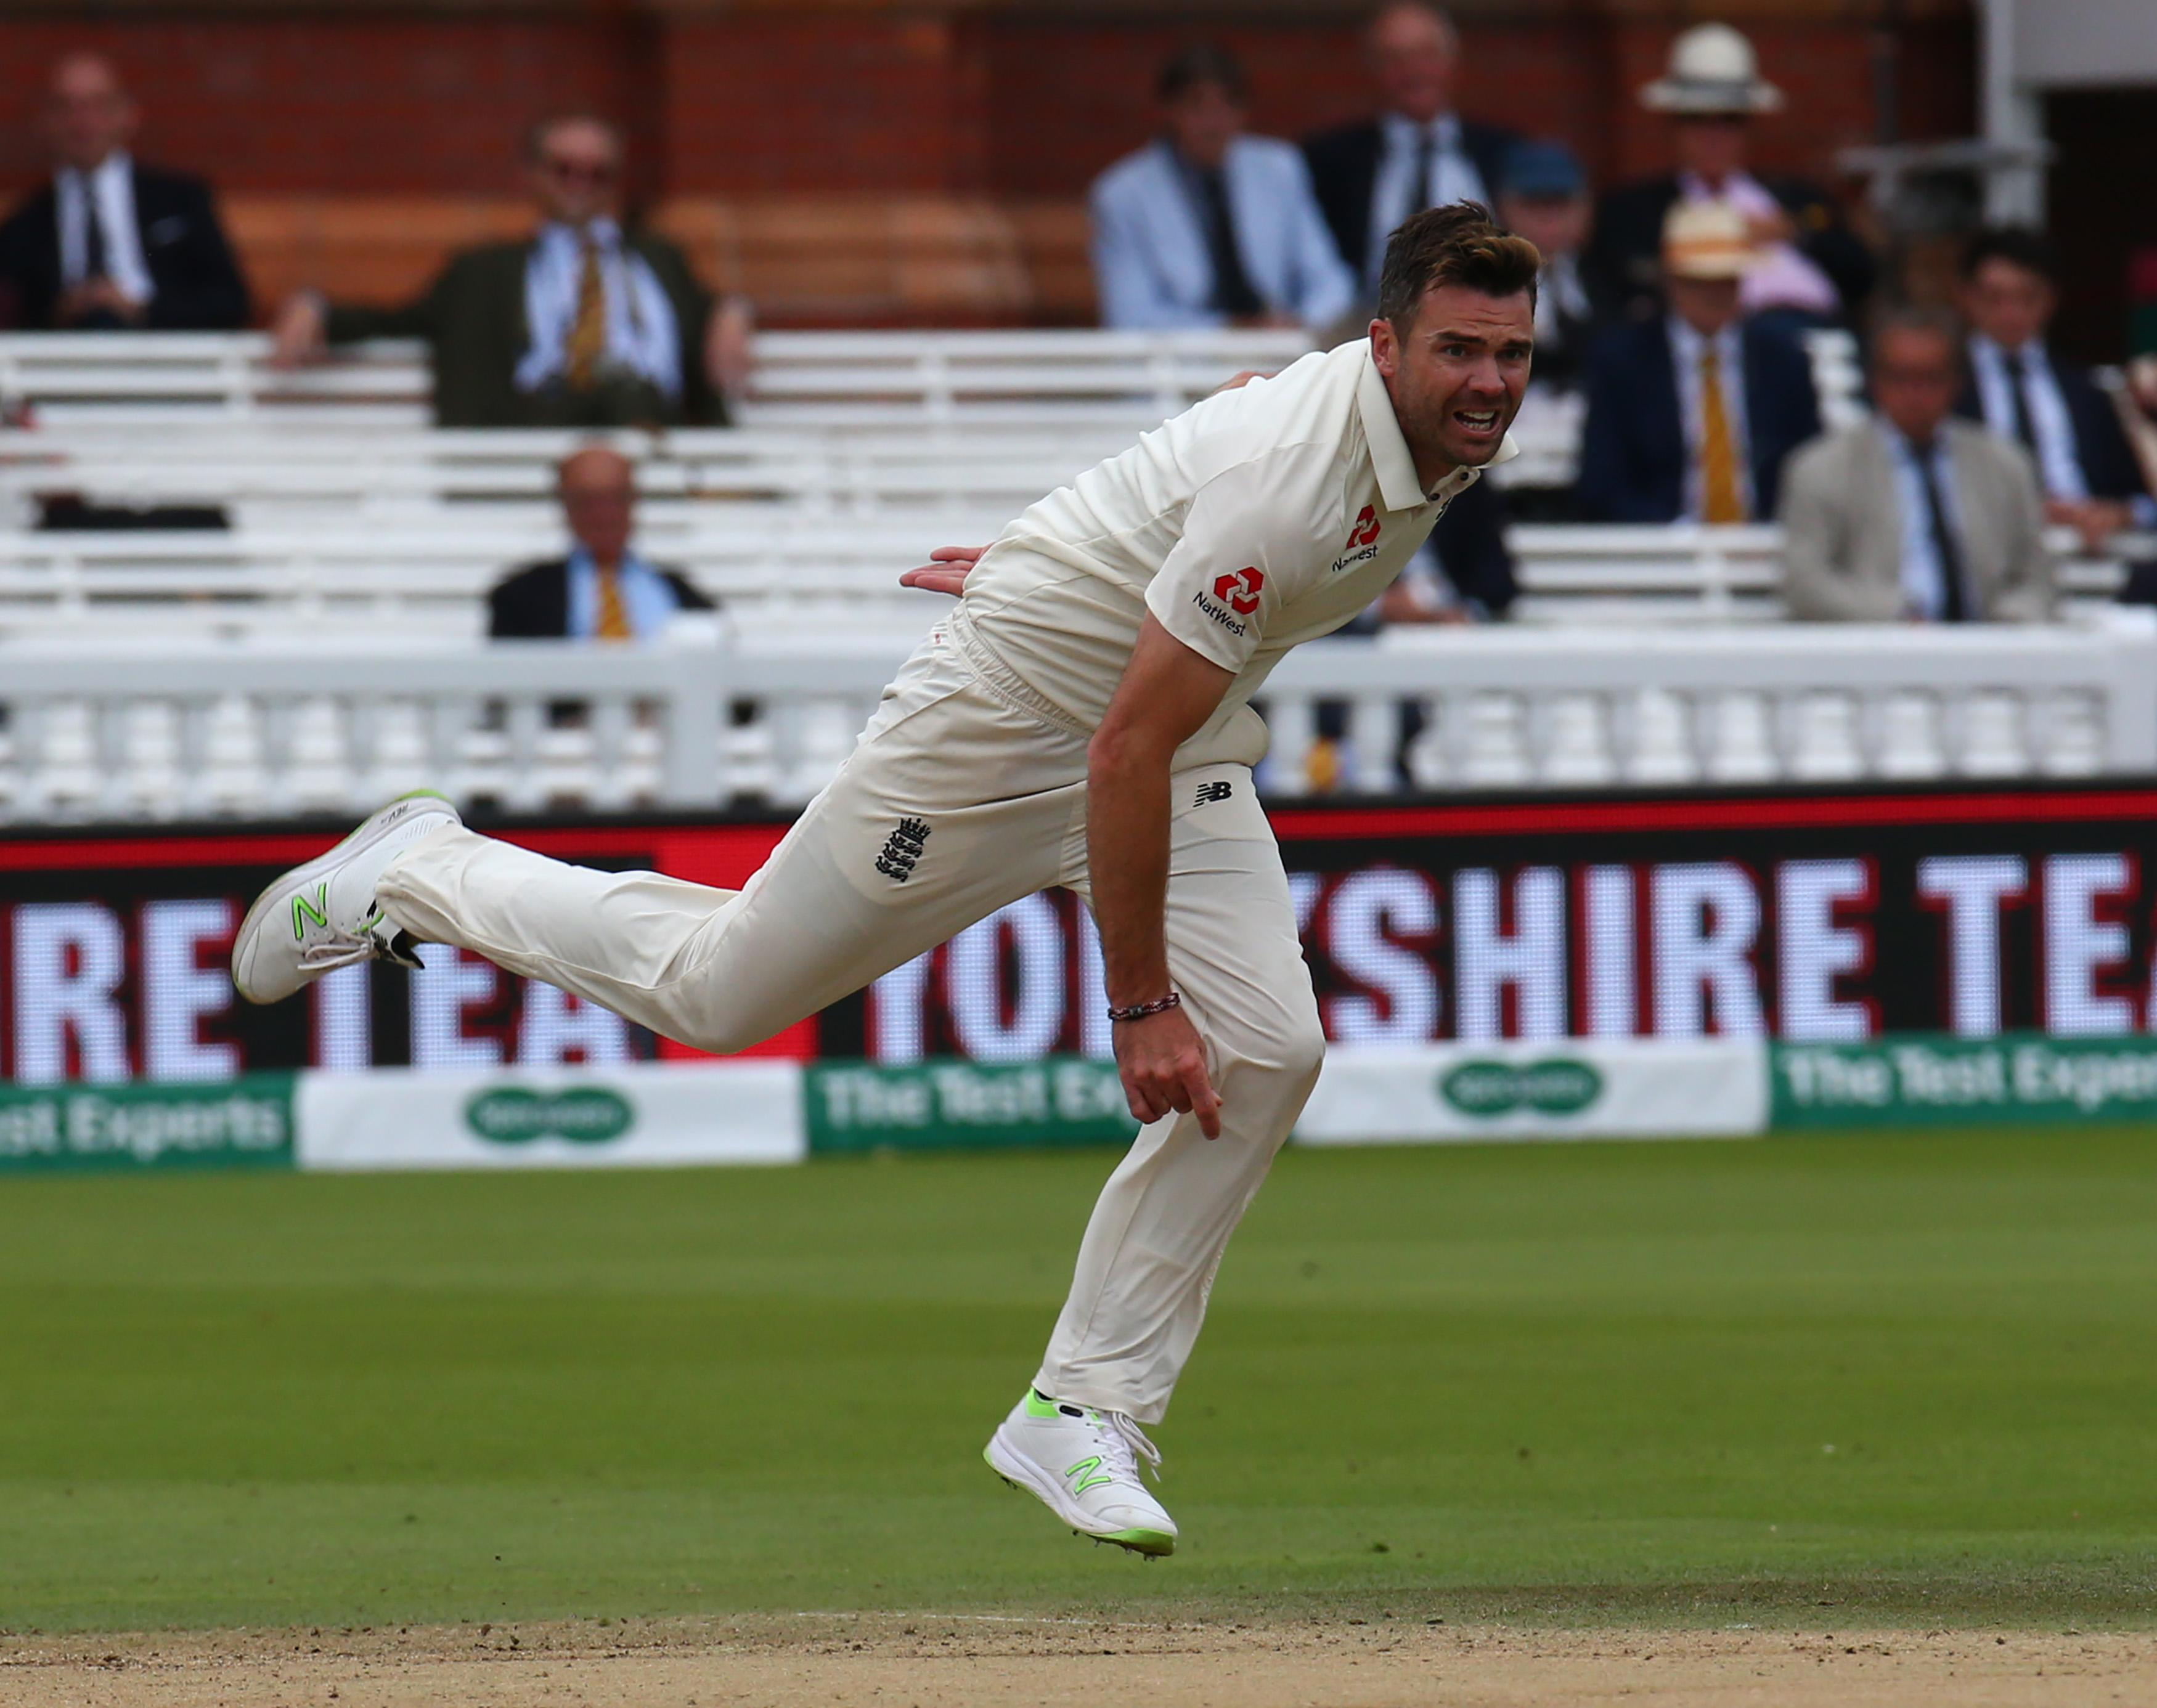 James Anderson is enjoying one of the best stints of his career despite his age